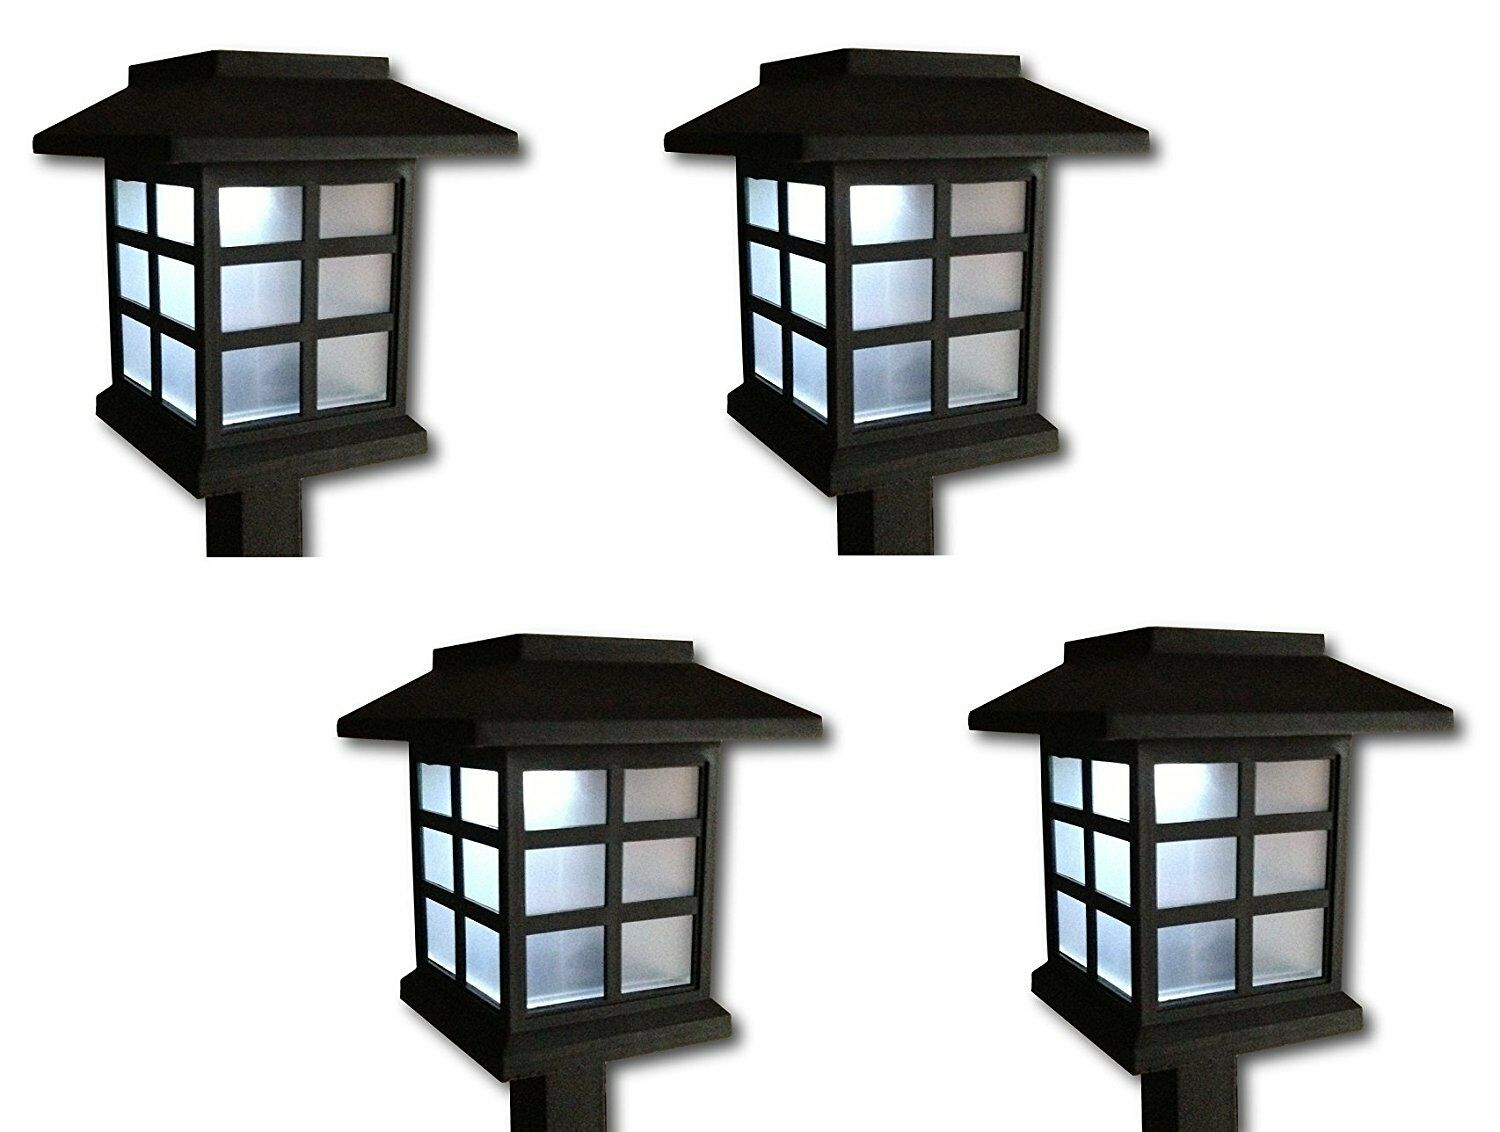 4 x led solarleuchte solarlampe solar laterne. Black Bedroom Furniture Sets. Home Design Ideas